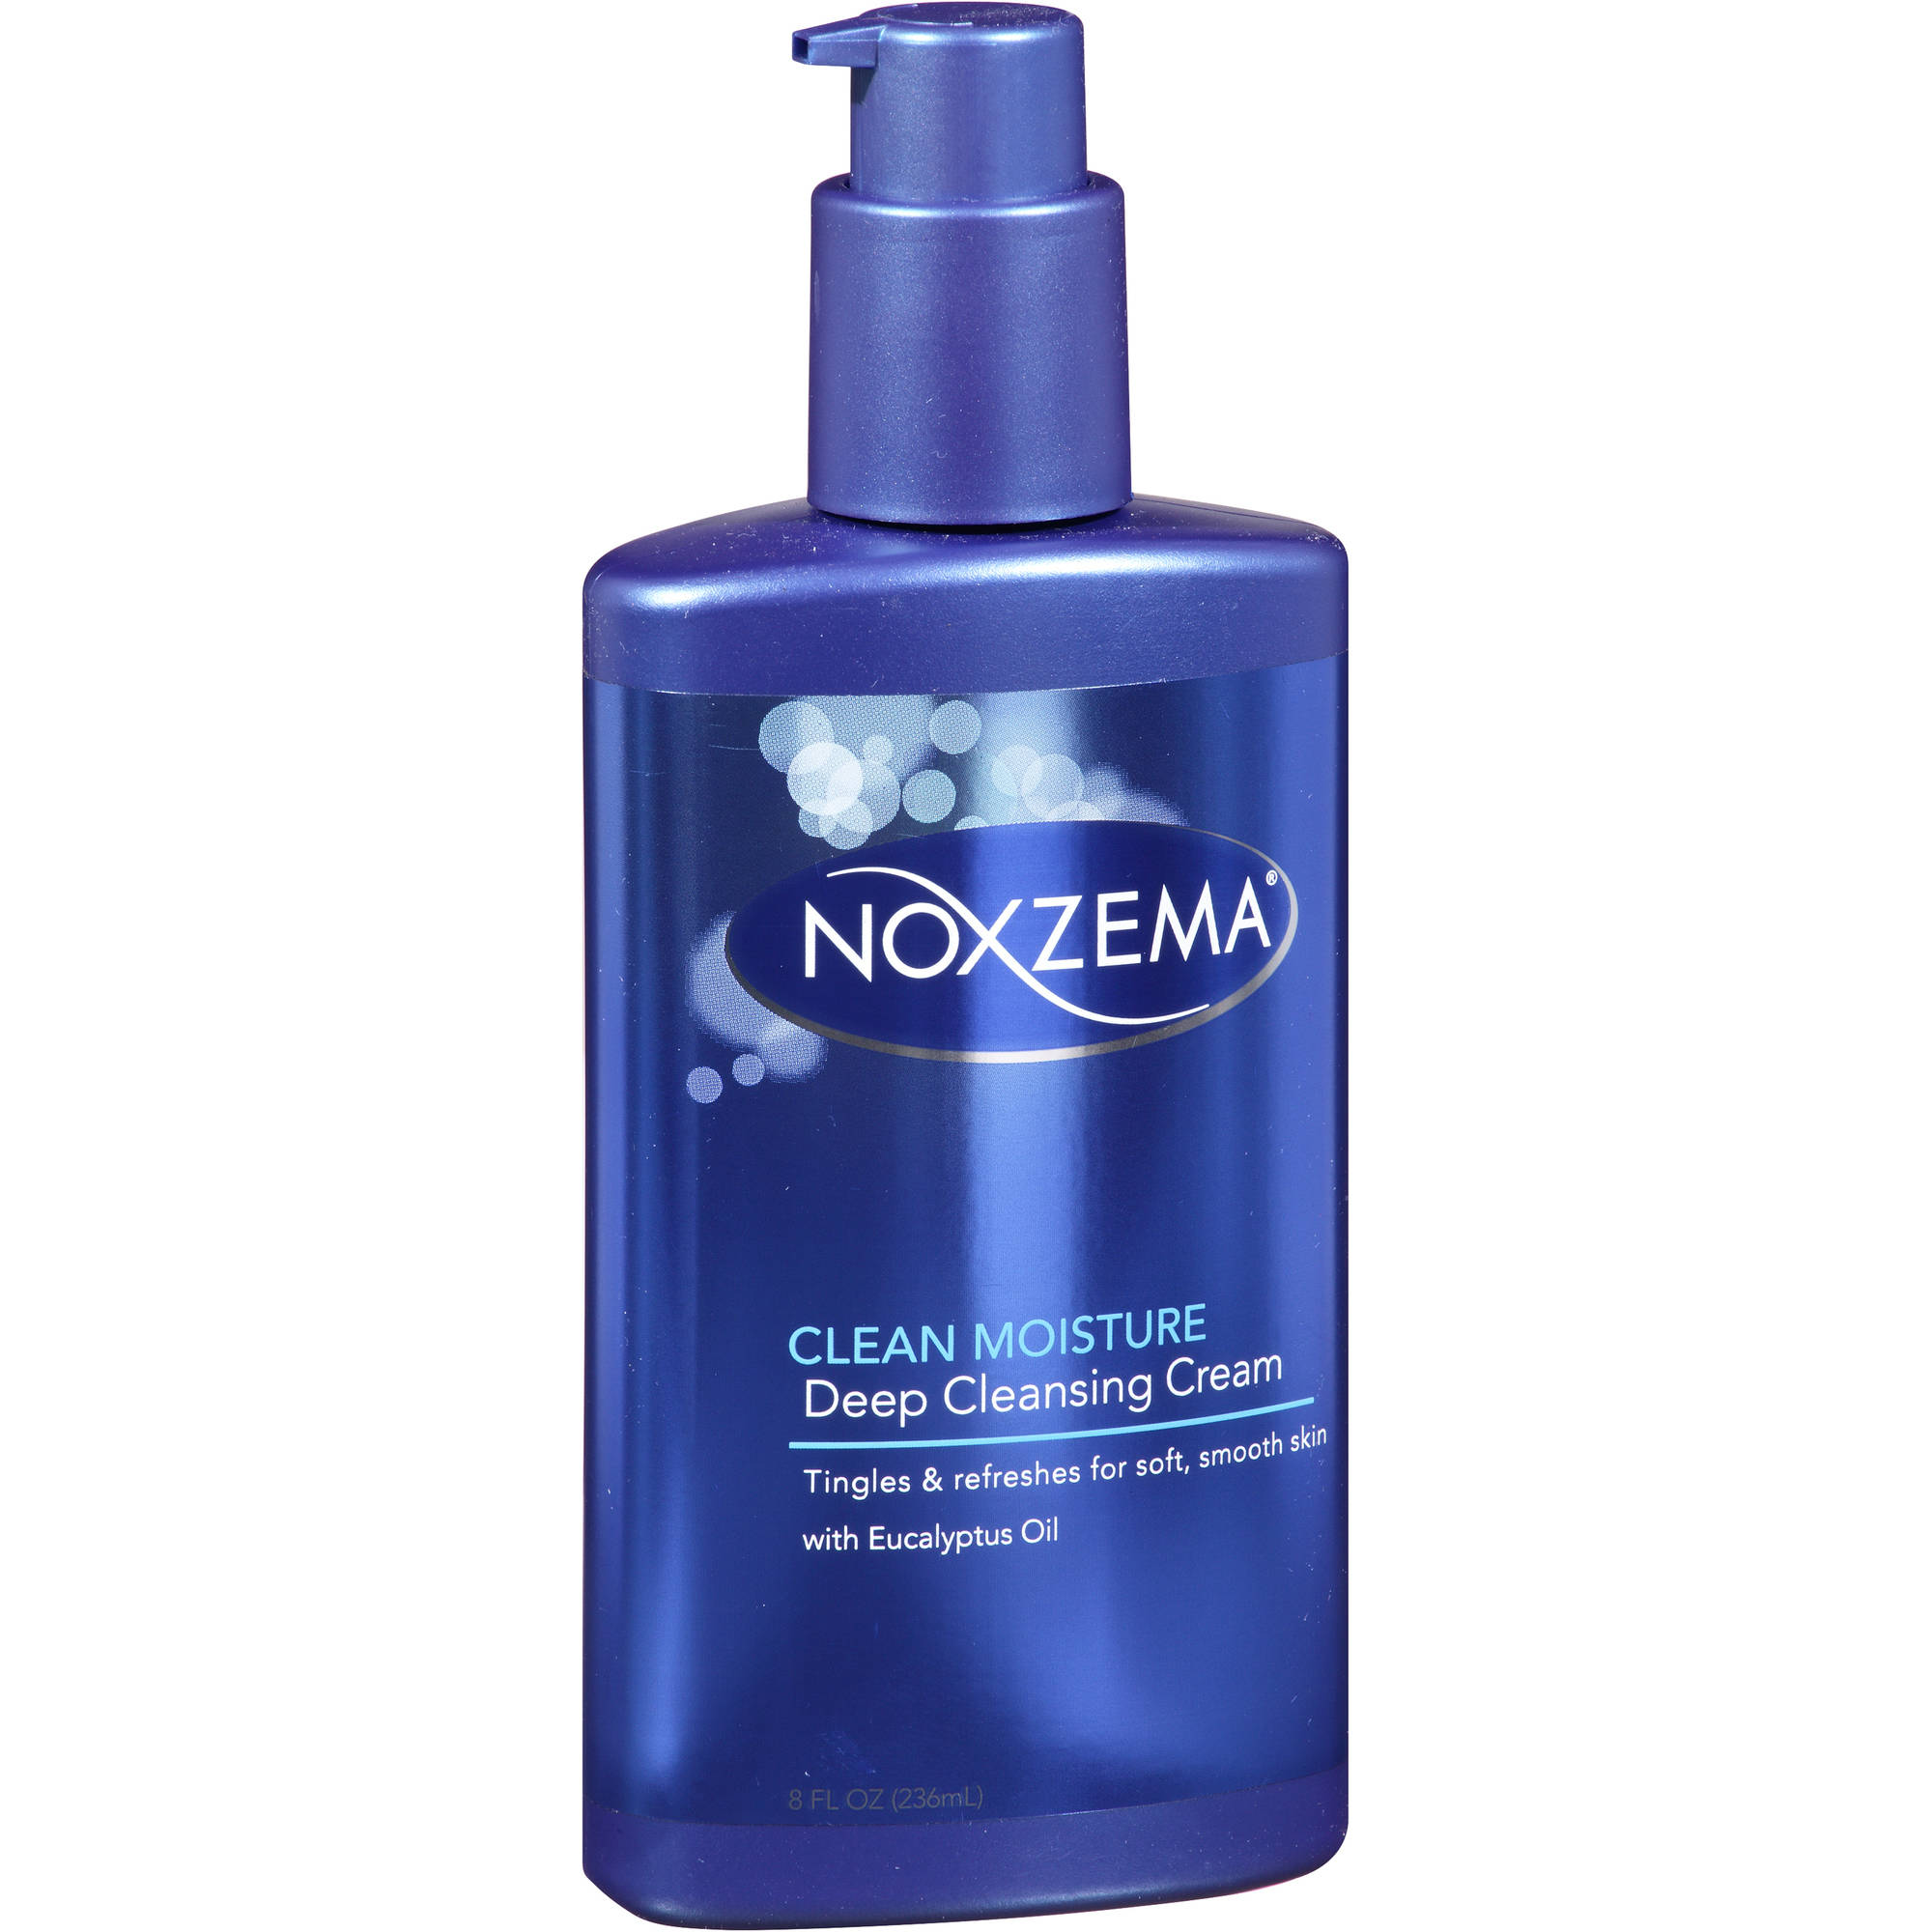 Noxzema Classic Clean Original Deep Cleansing Cream, 8 oz